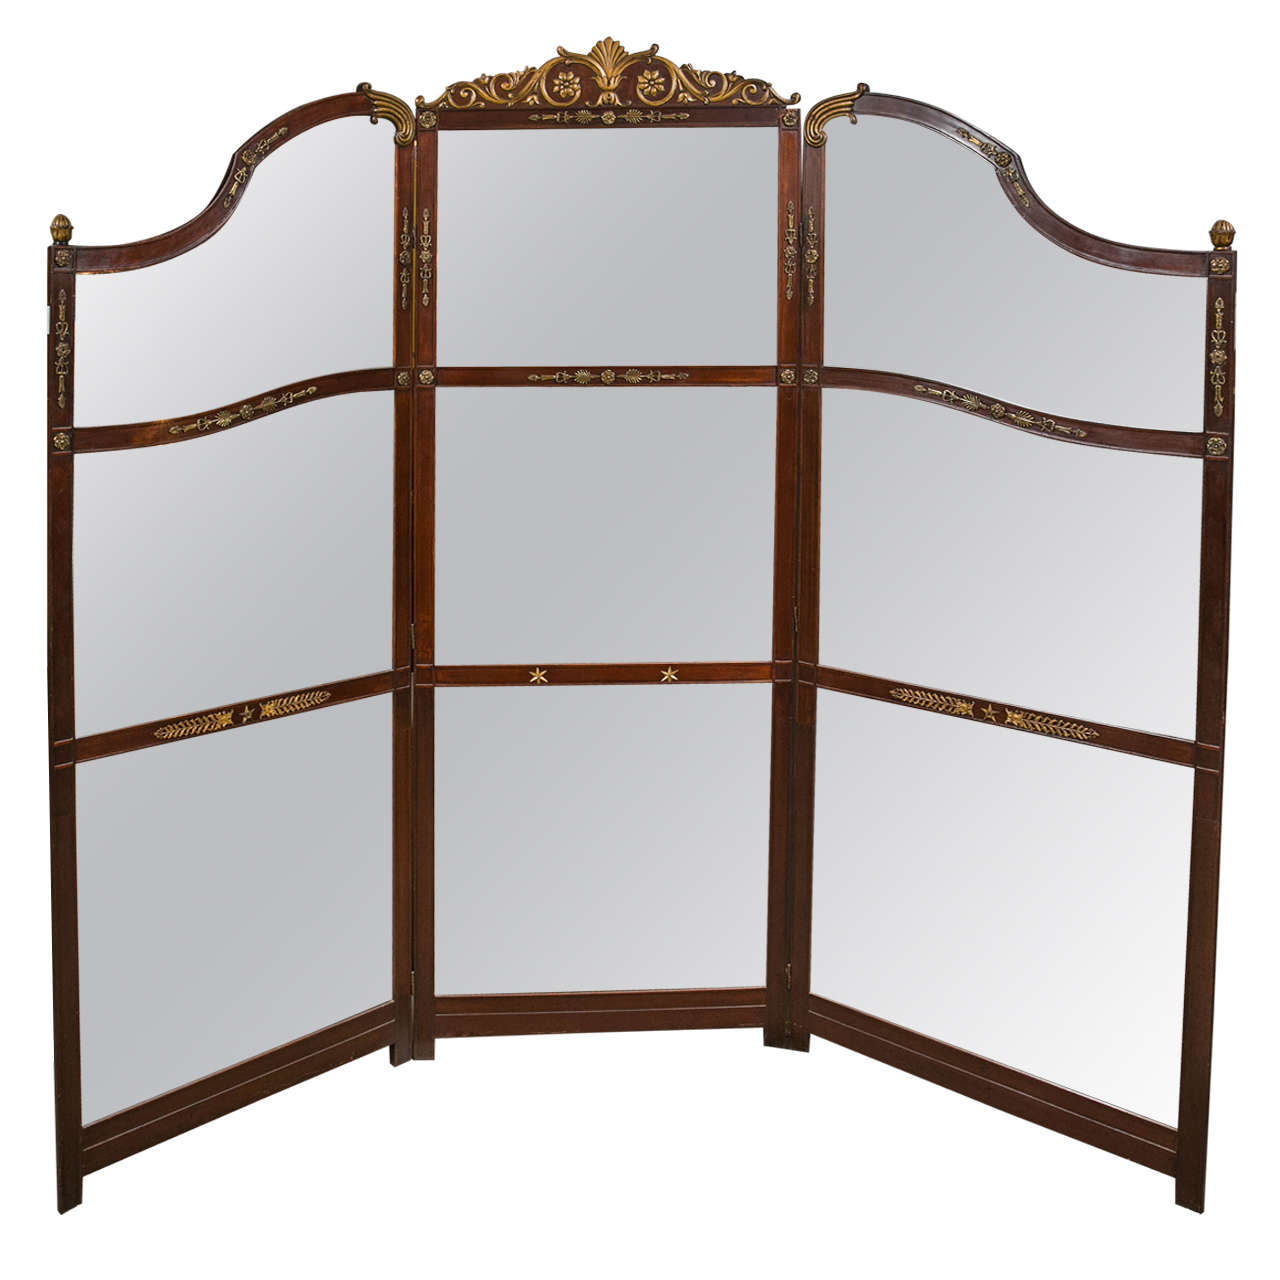 Three-Panel Room Divider or Screen Mirror and Mahogany, Early 19th Century 1